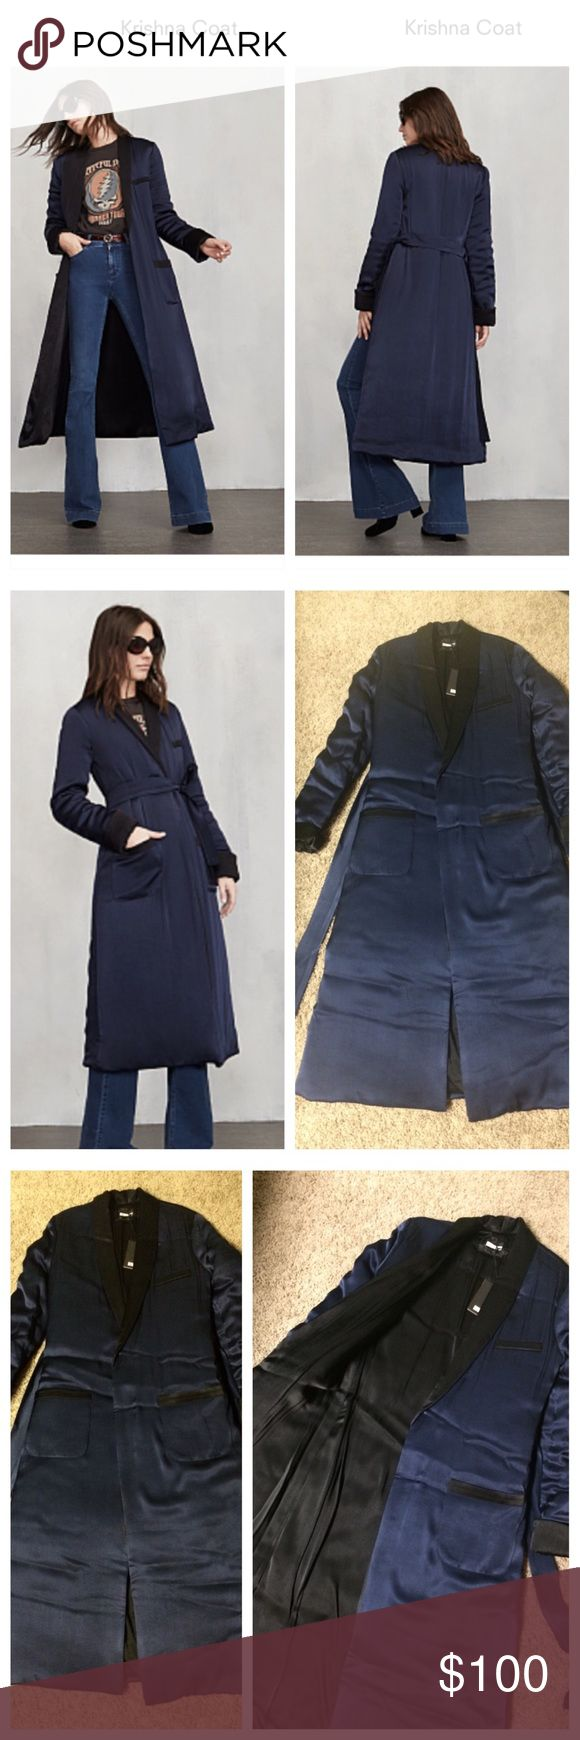 Brand new reformation Krishna coat, size XS Brand new reformation Krishna coat, size XS would fit for S too, (ask me for measures if need) whit the tag.   Store price 278$ SOLD OUT   #reformation #reformationcoat #reformationkrishnacoat #coat #reformationlongcoat #krishnacoat #iso #soldout #sale Reformation Jackets & Coats Pea Coats